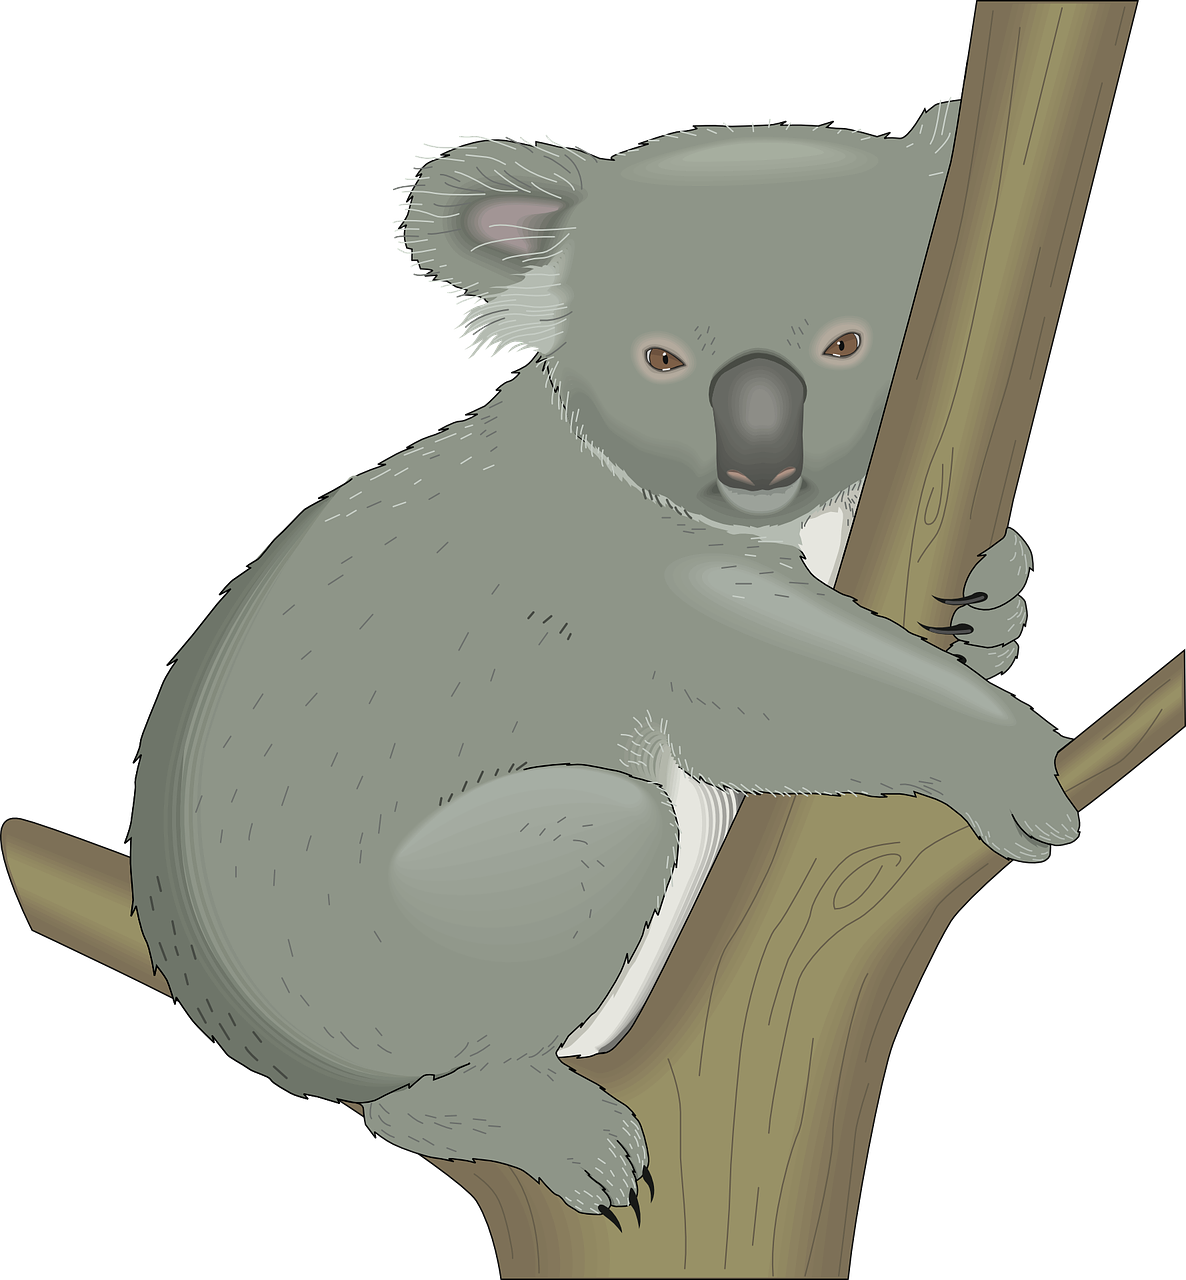 koala,australia,tree,hug,branch,animal,mammal,wildlife,australian,native,free vector graphics,free pictures, free photos, free images, royalty free, free illustrations, public domain